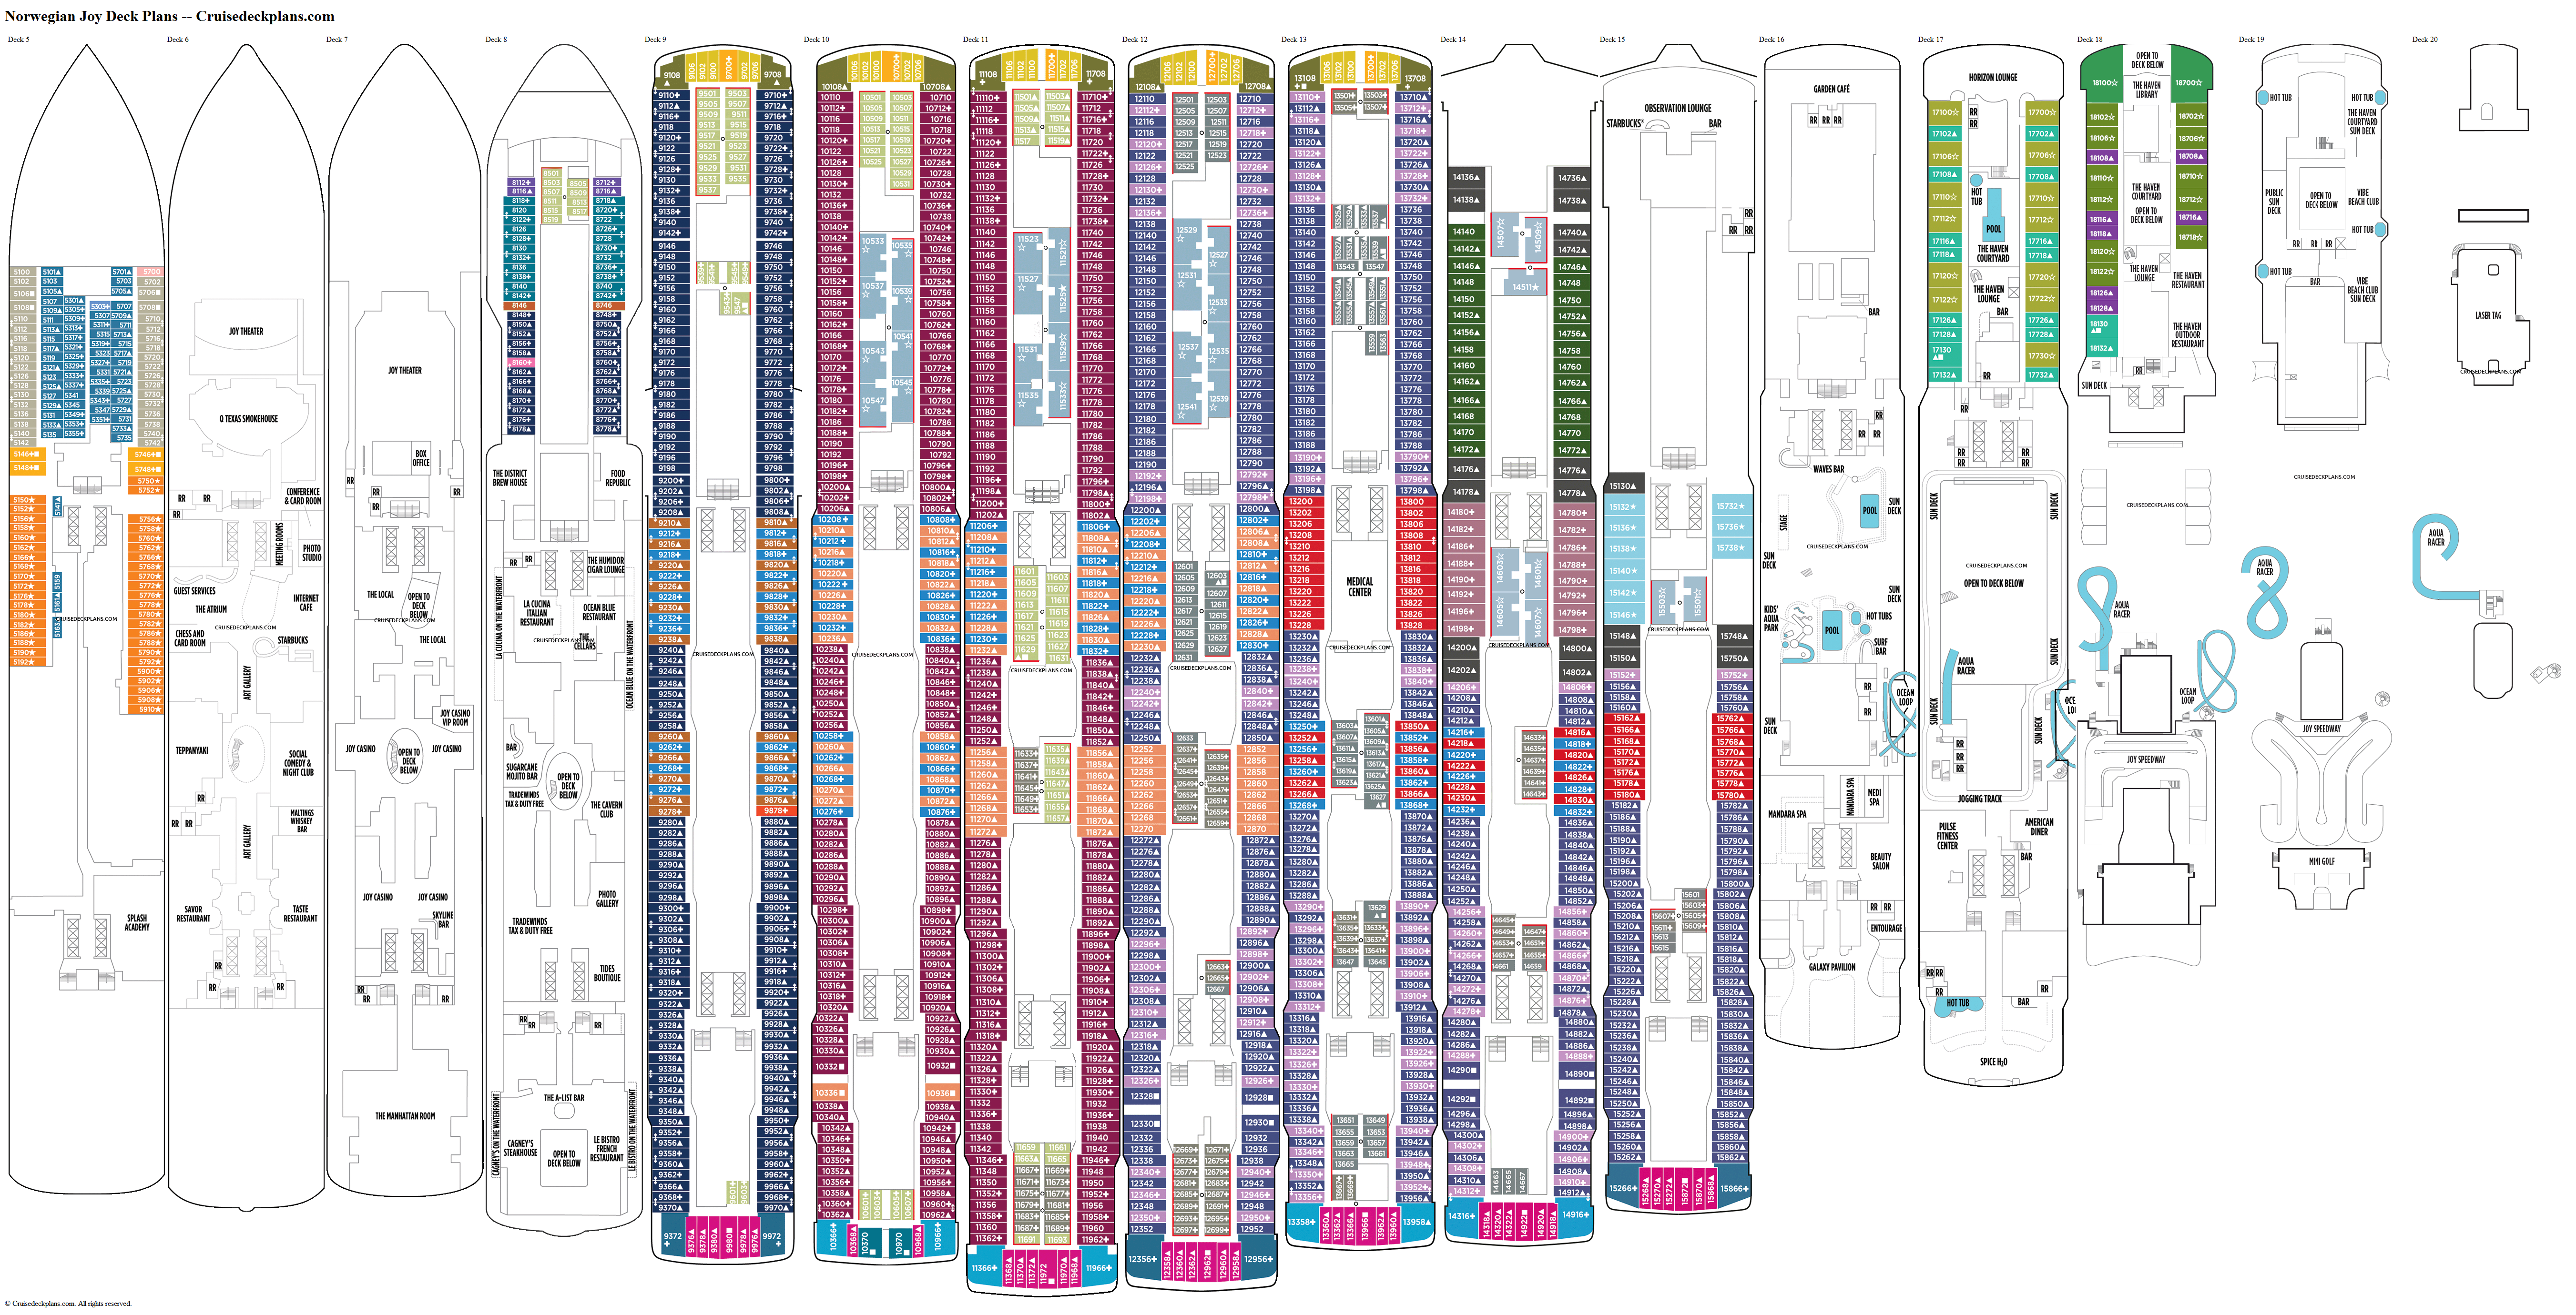 Norwegian Joy deck plans image